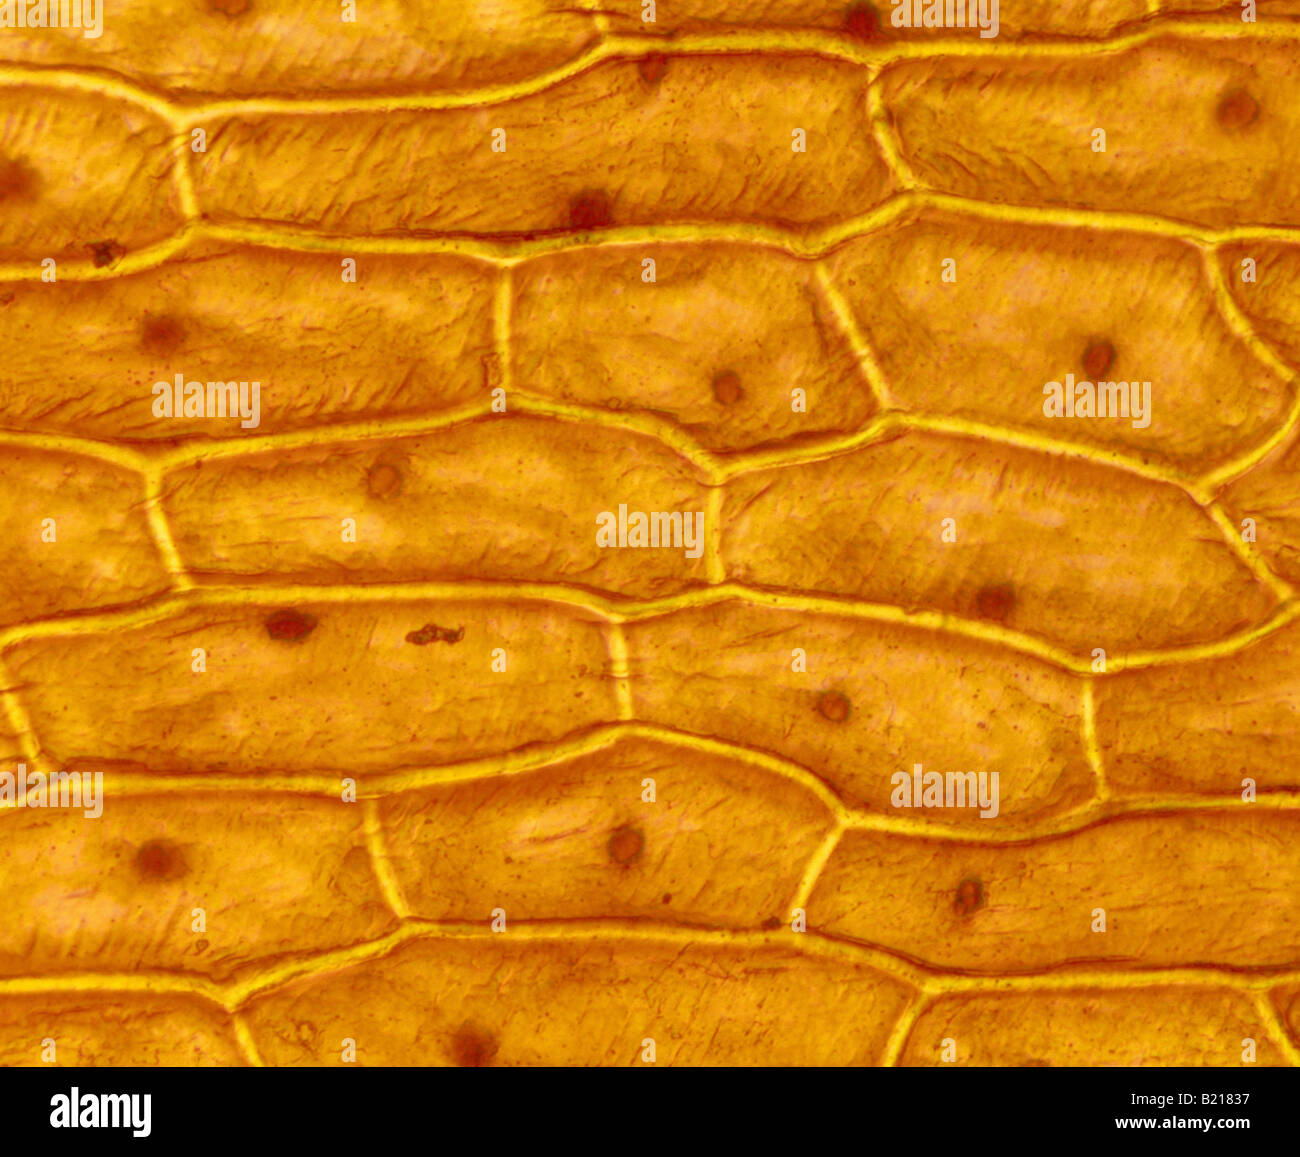 onion cell diagram garage consumer unit wiring skin cells epidermal shows structure and